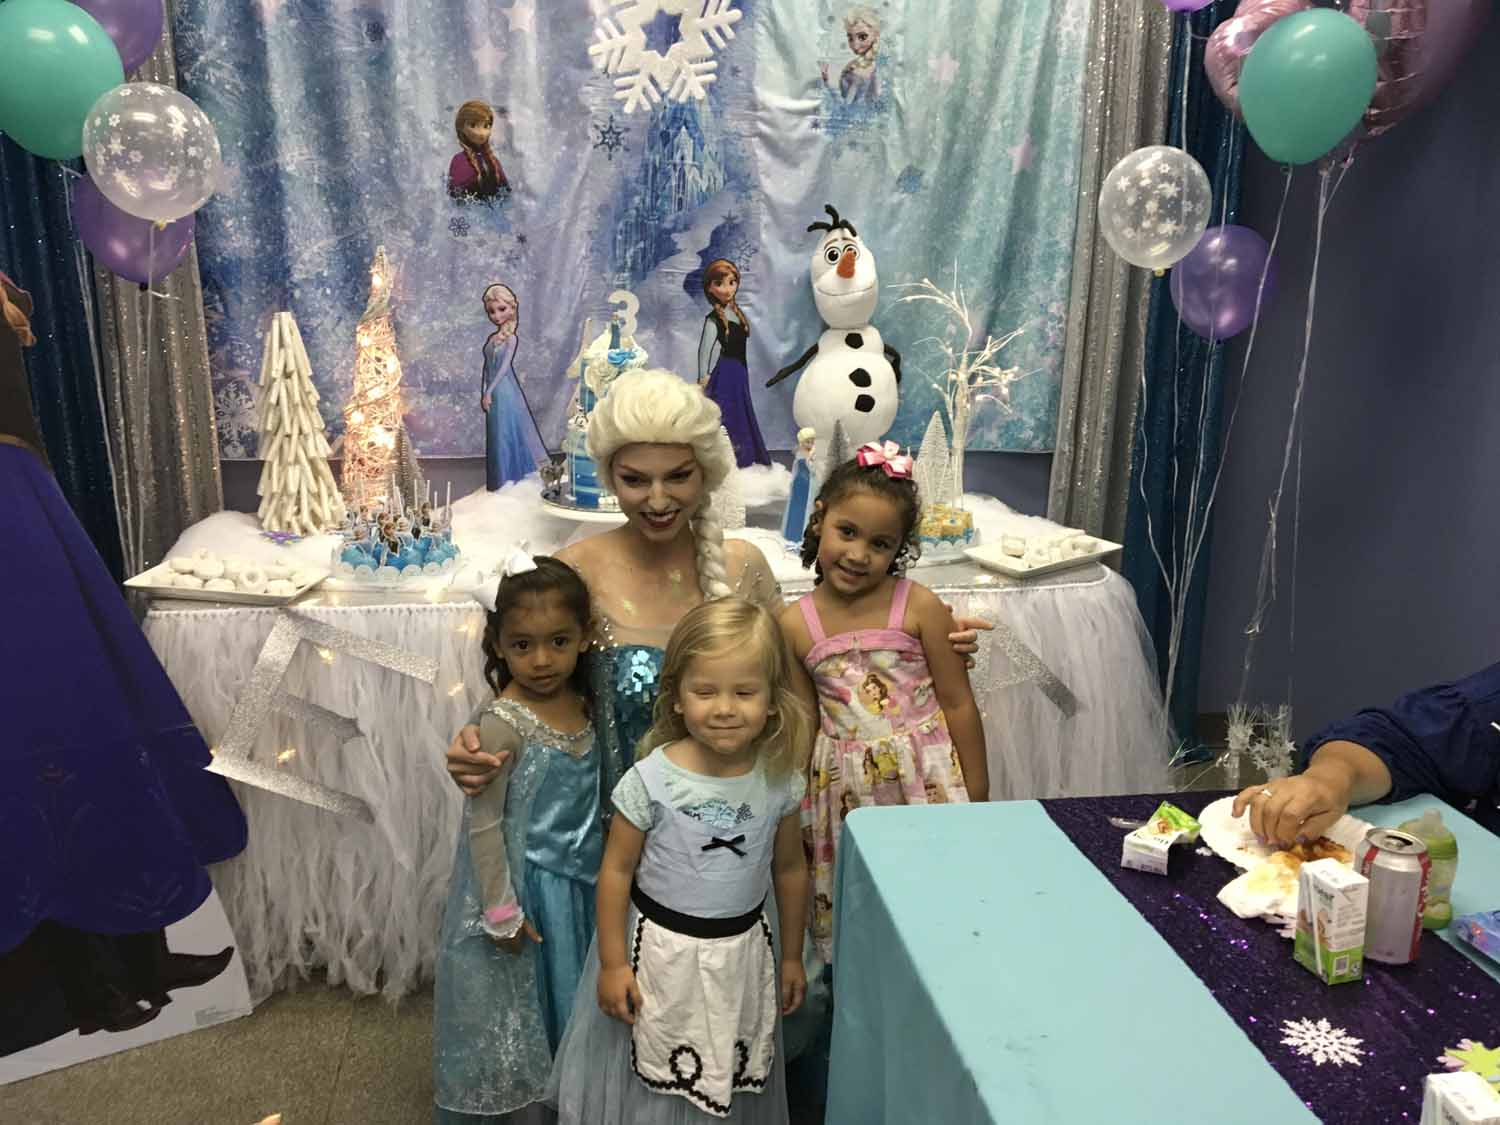 frozen themed birthday party in orlando florida - princesses and princes (11).jpg